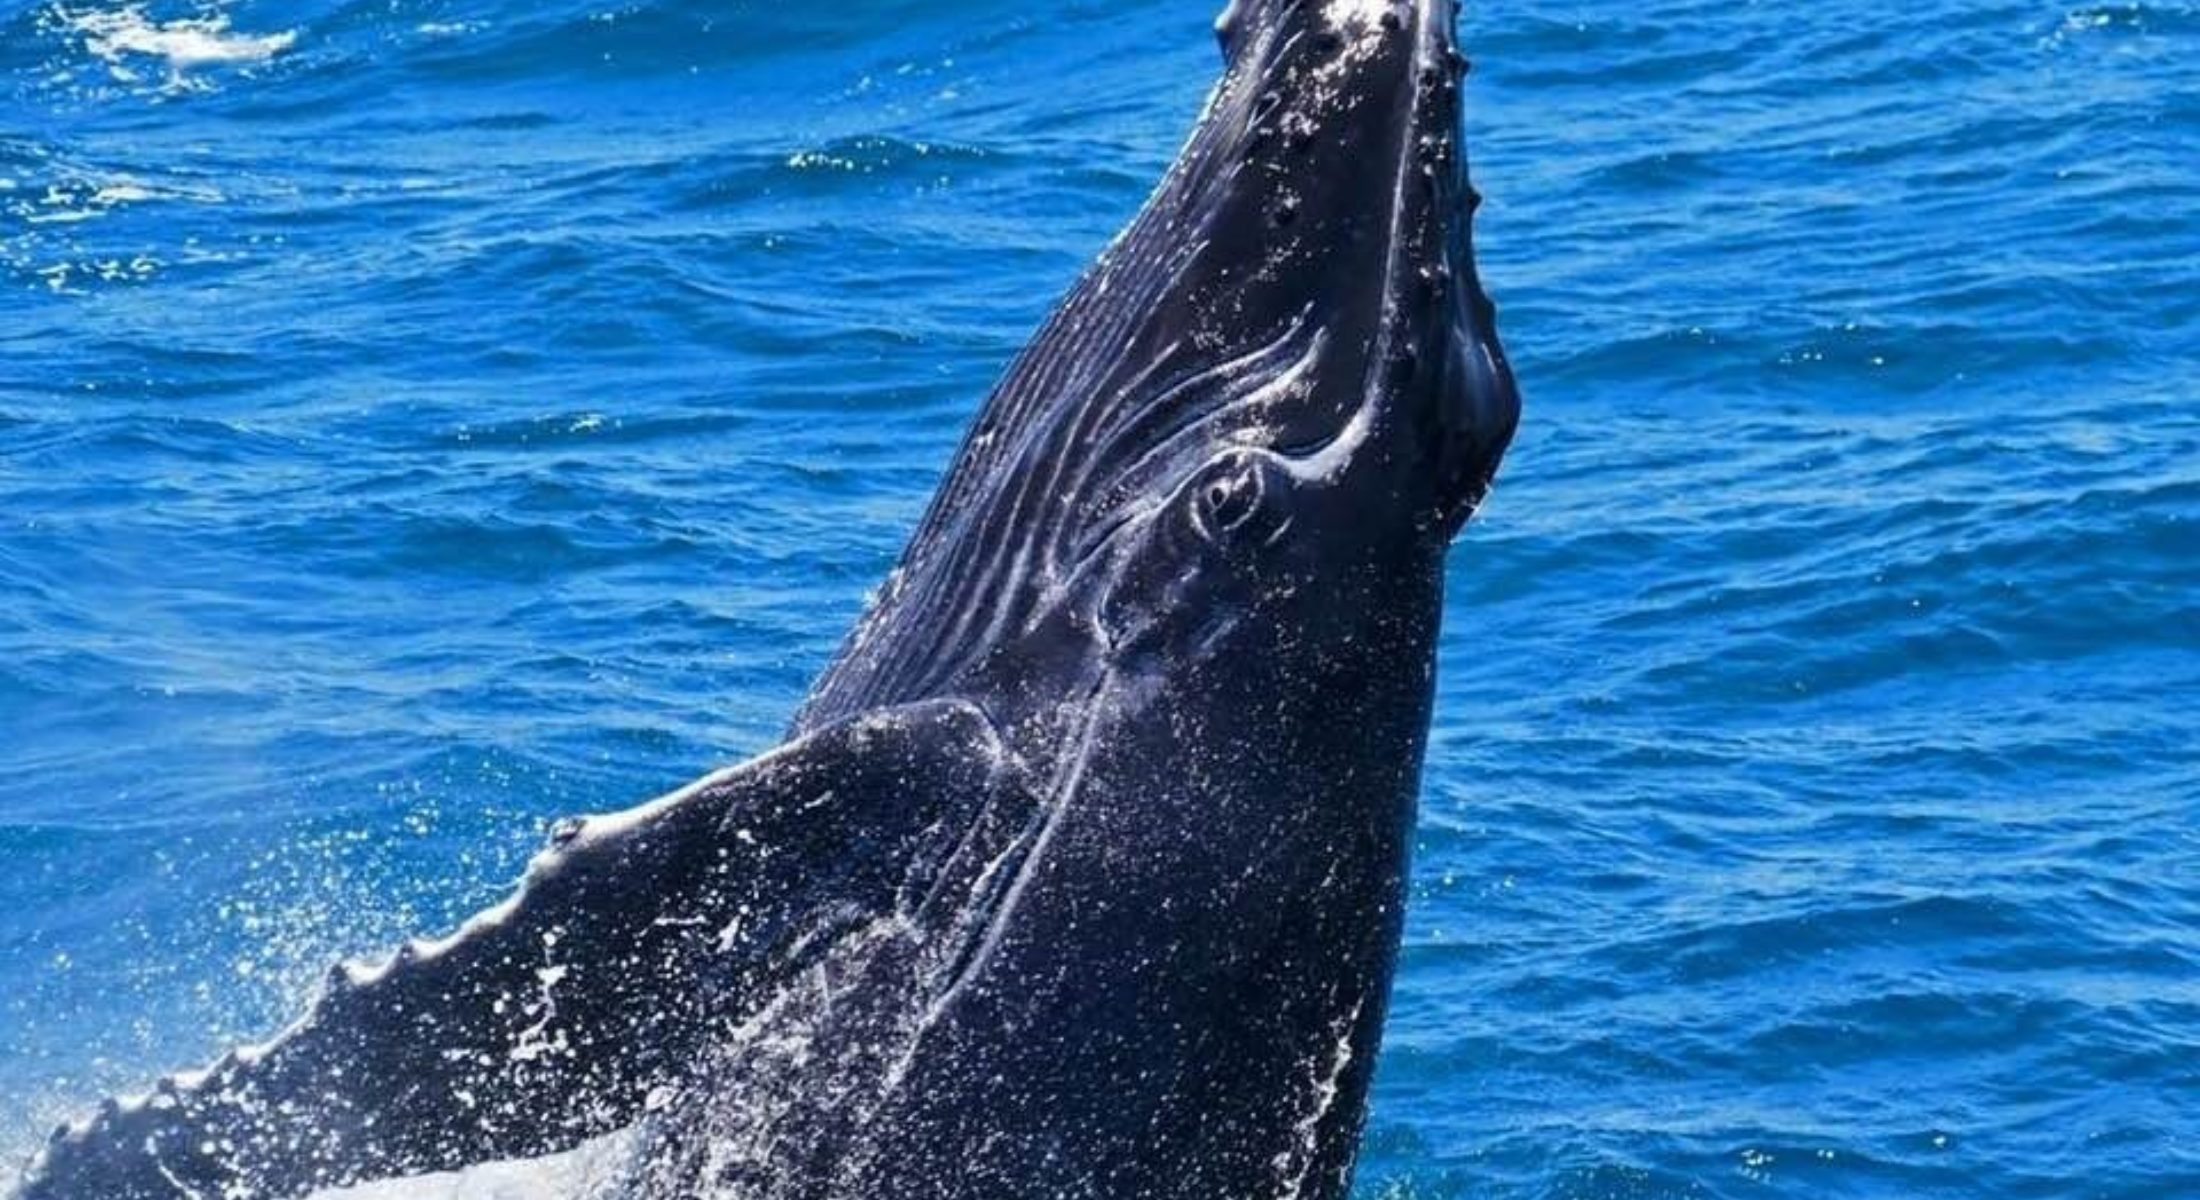 Billy Humpback Whale Image Credit Brisbane Whale Watching